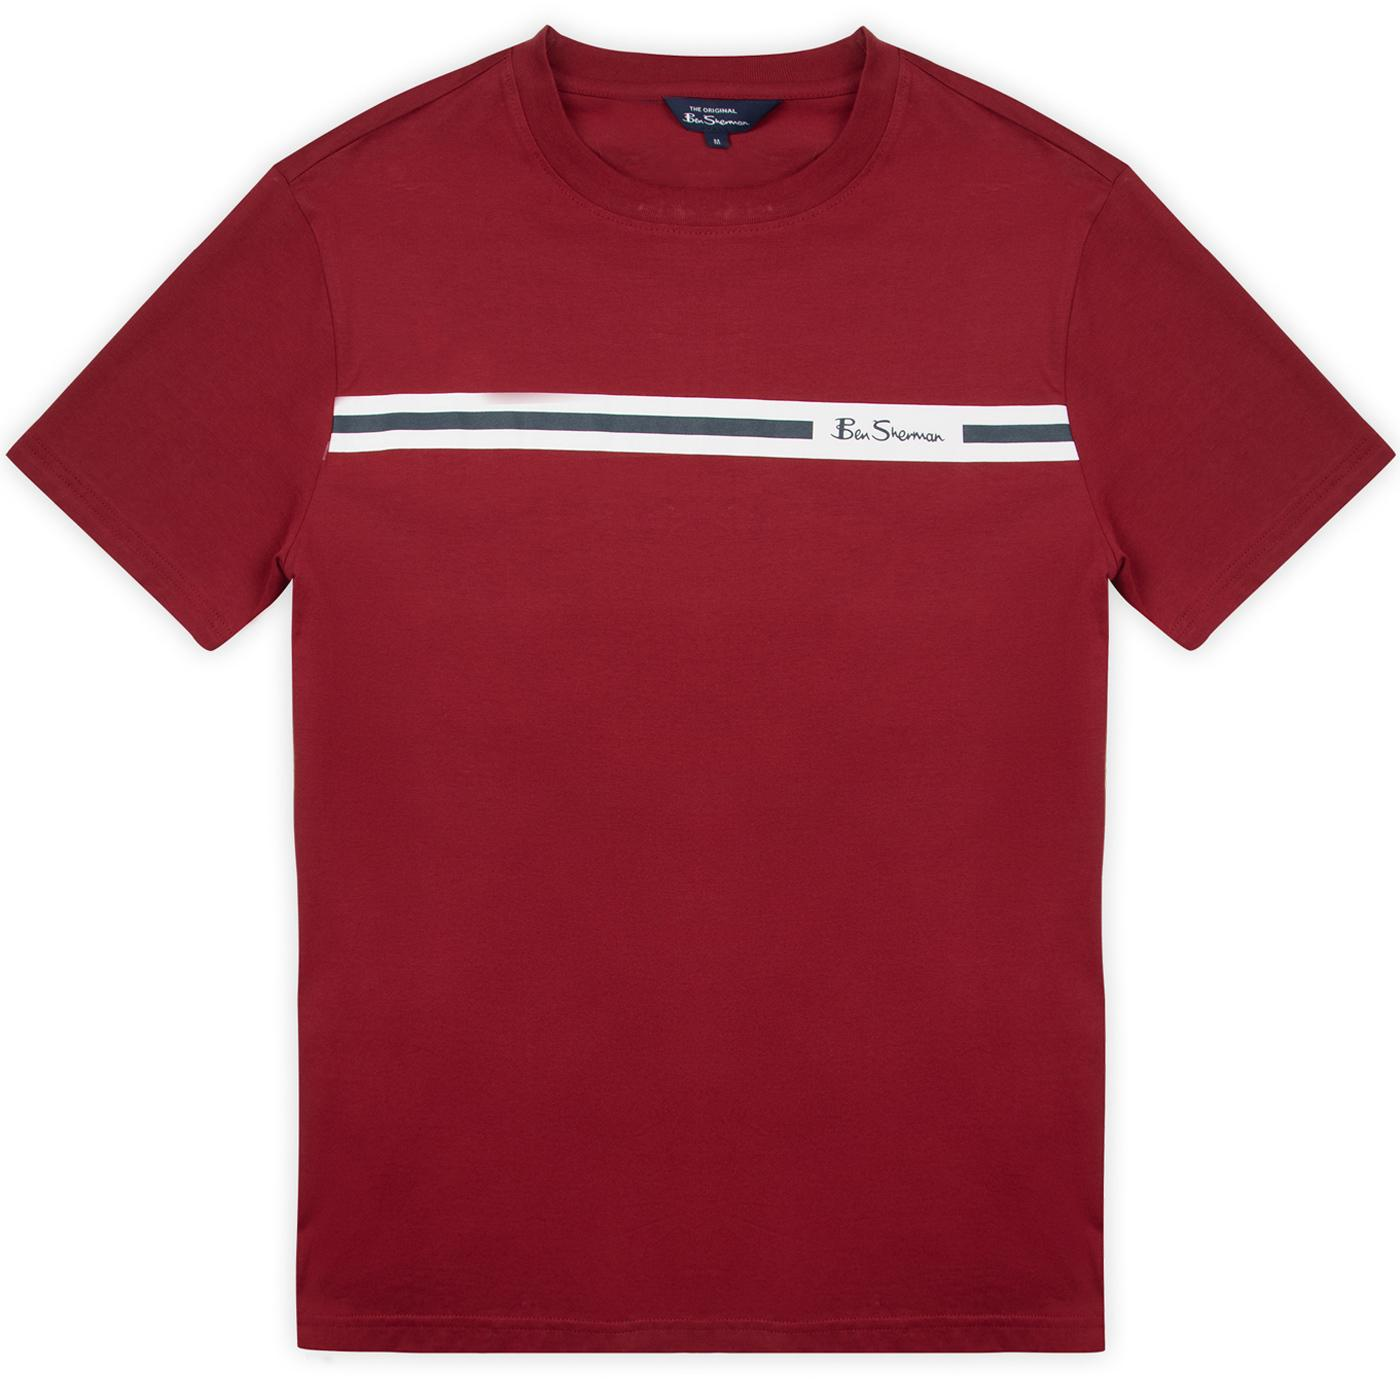 BEN SHERMAN Retro 90s Indie Chest Stripe Tee (Red)